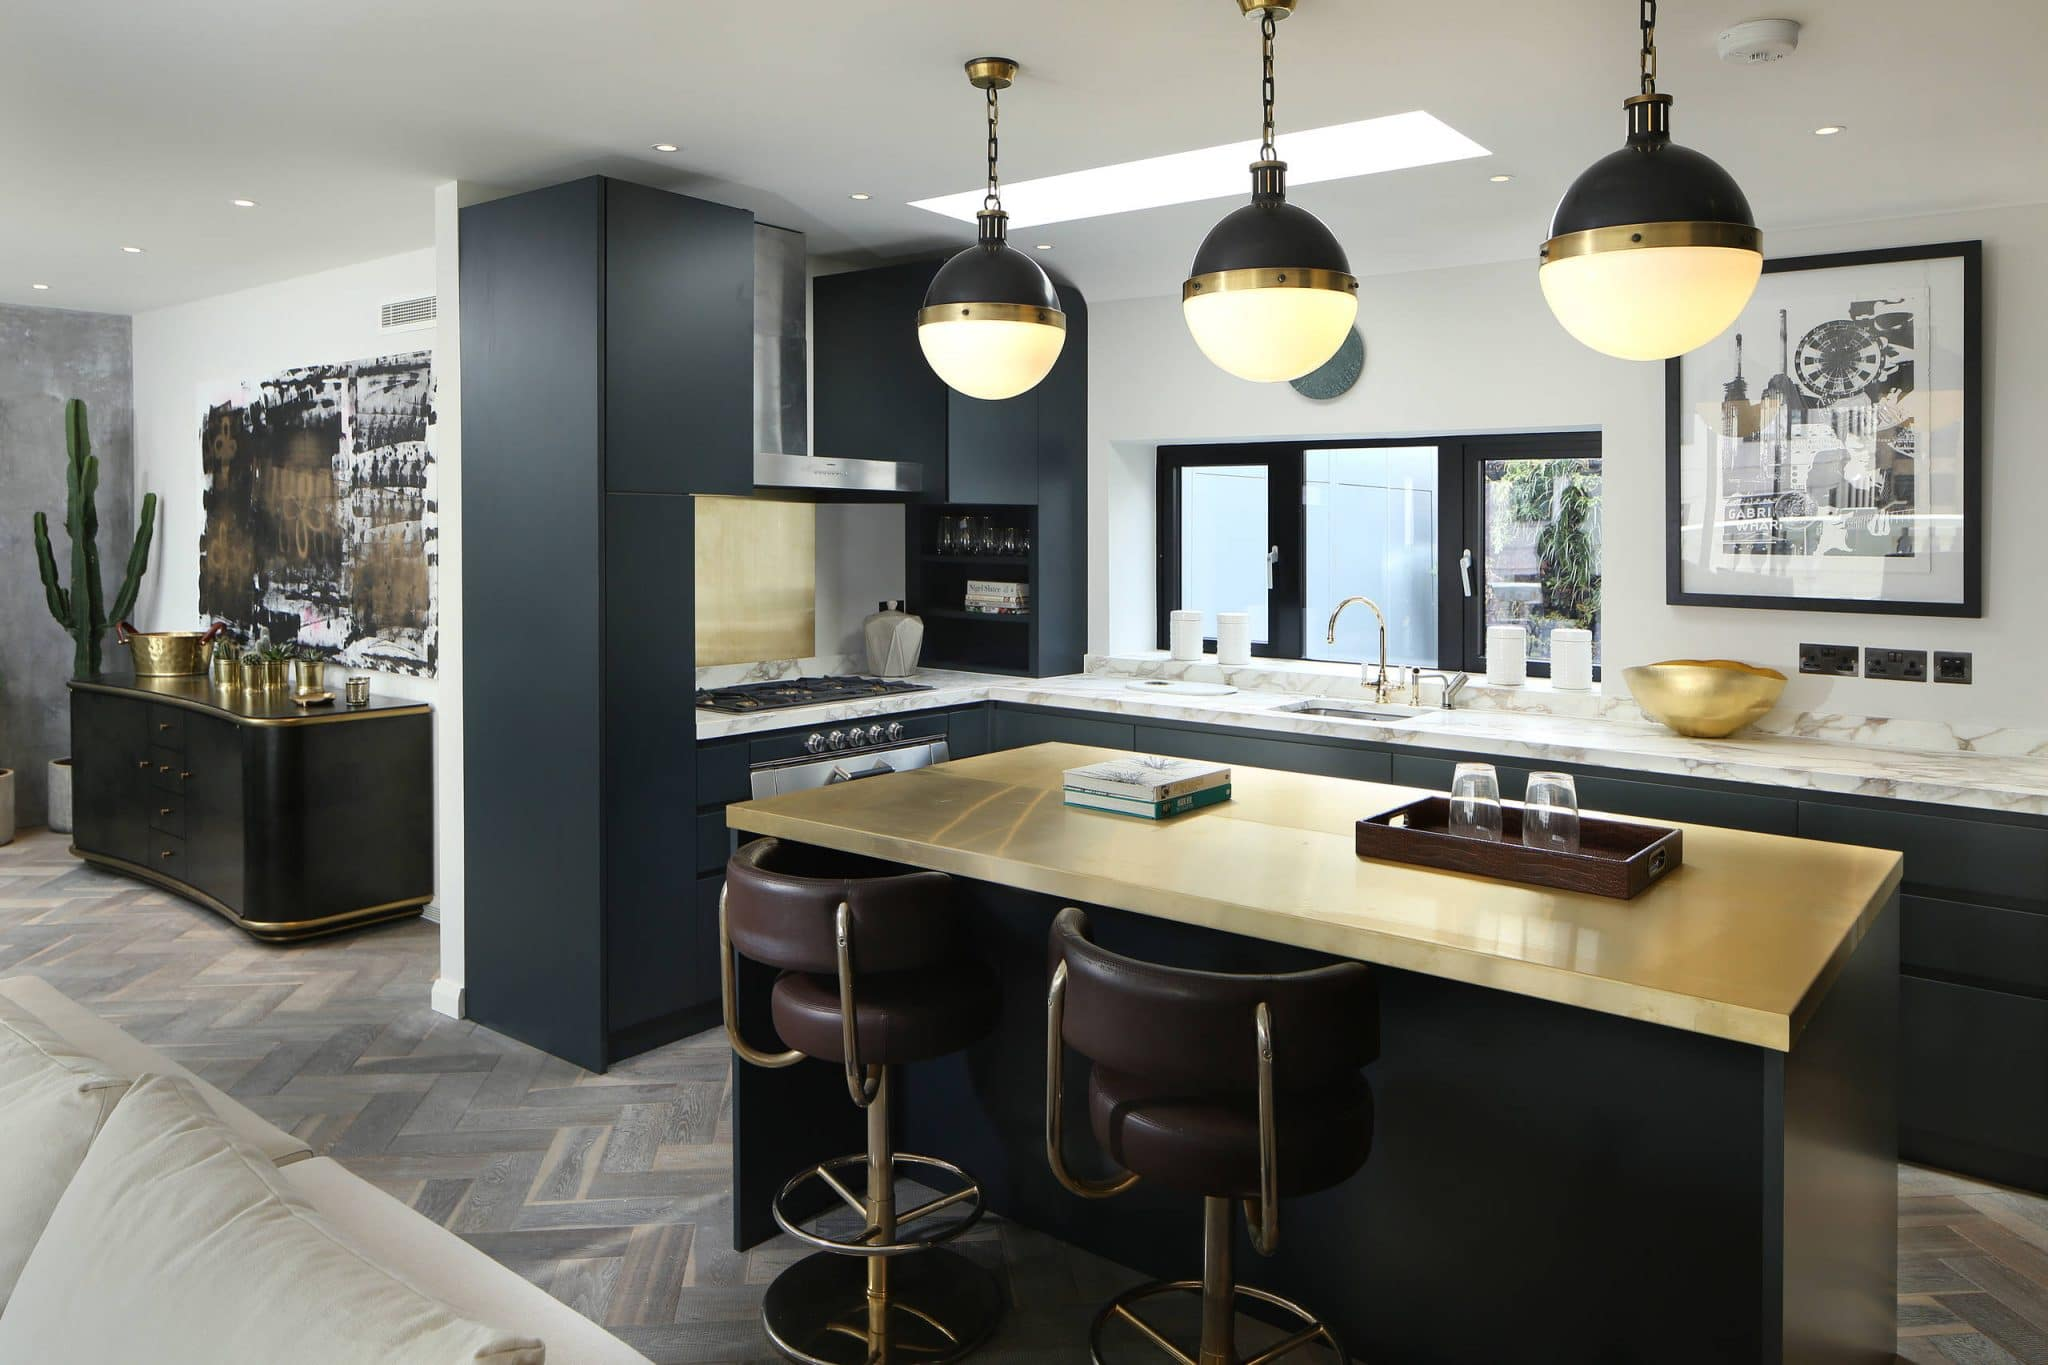 Kitchen Trends Of 2017 Part V Flooring Sinks Best